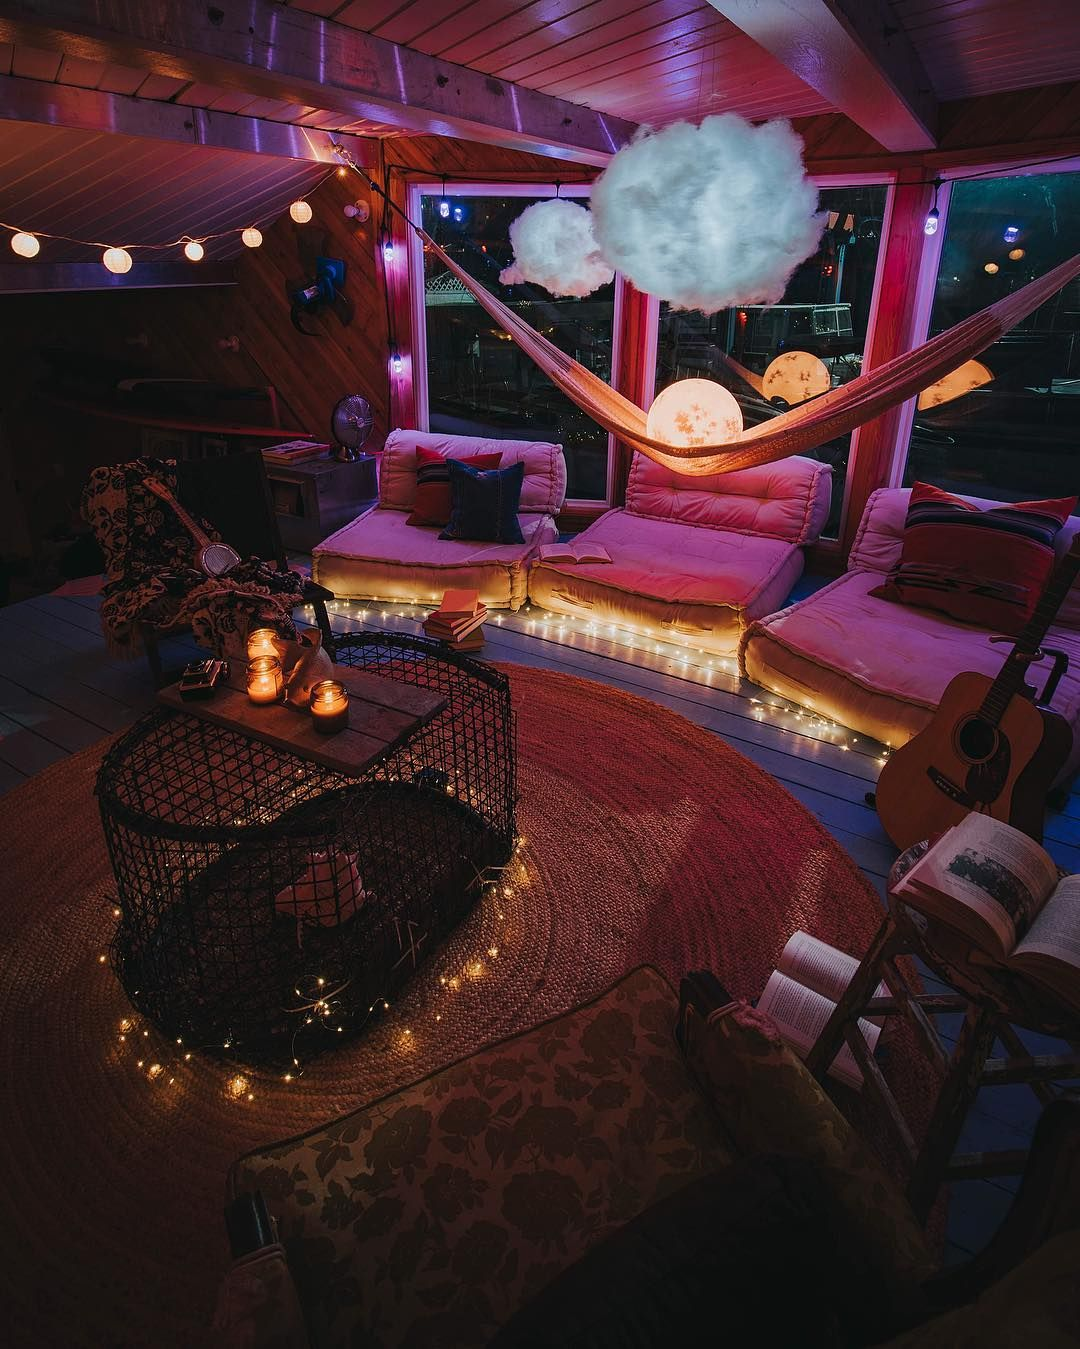 """Photo of Christopher Funk on Instagram: """"Had the pleasure of staying on the Ziggy Stardust houseboat this past weekend. Absolutely fell in love!! Here is a shot of the living room…"""""""